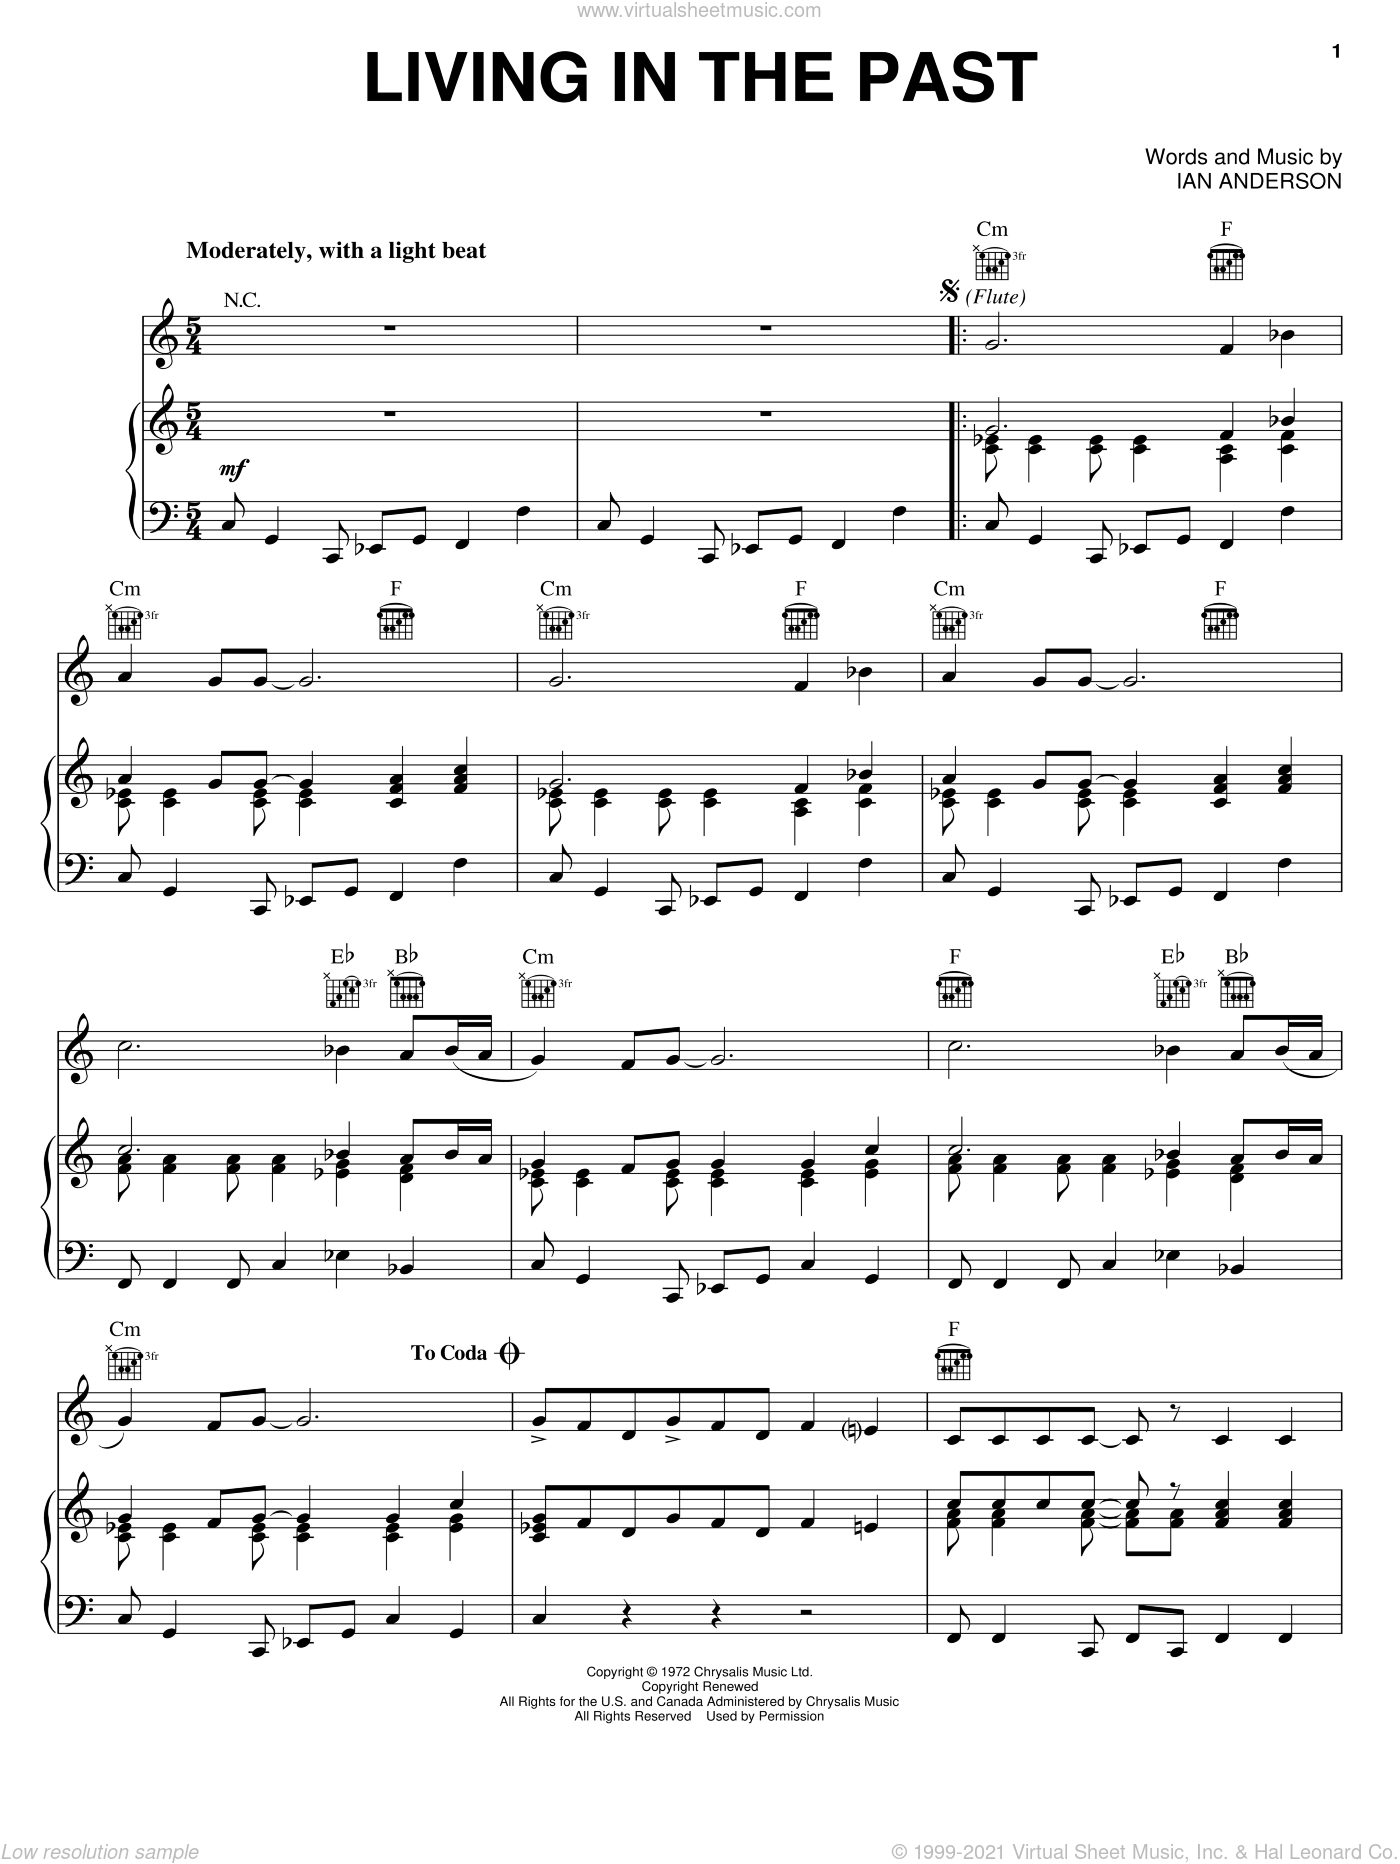 Living In The Past sheet music for voice, piano or guitar by Ian Anderson